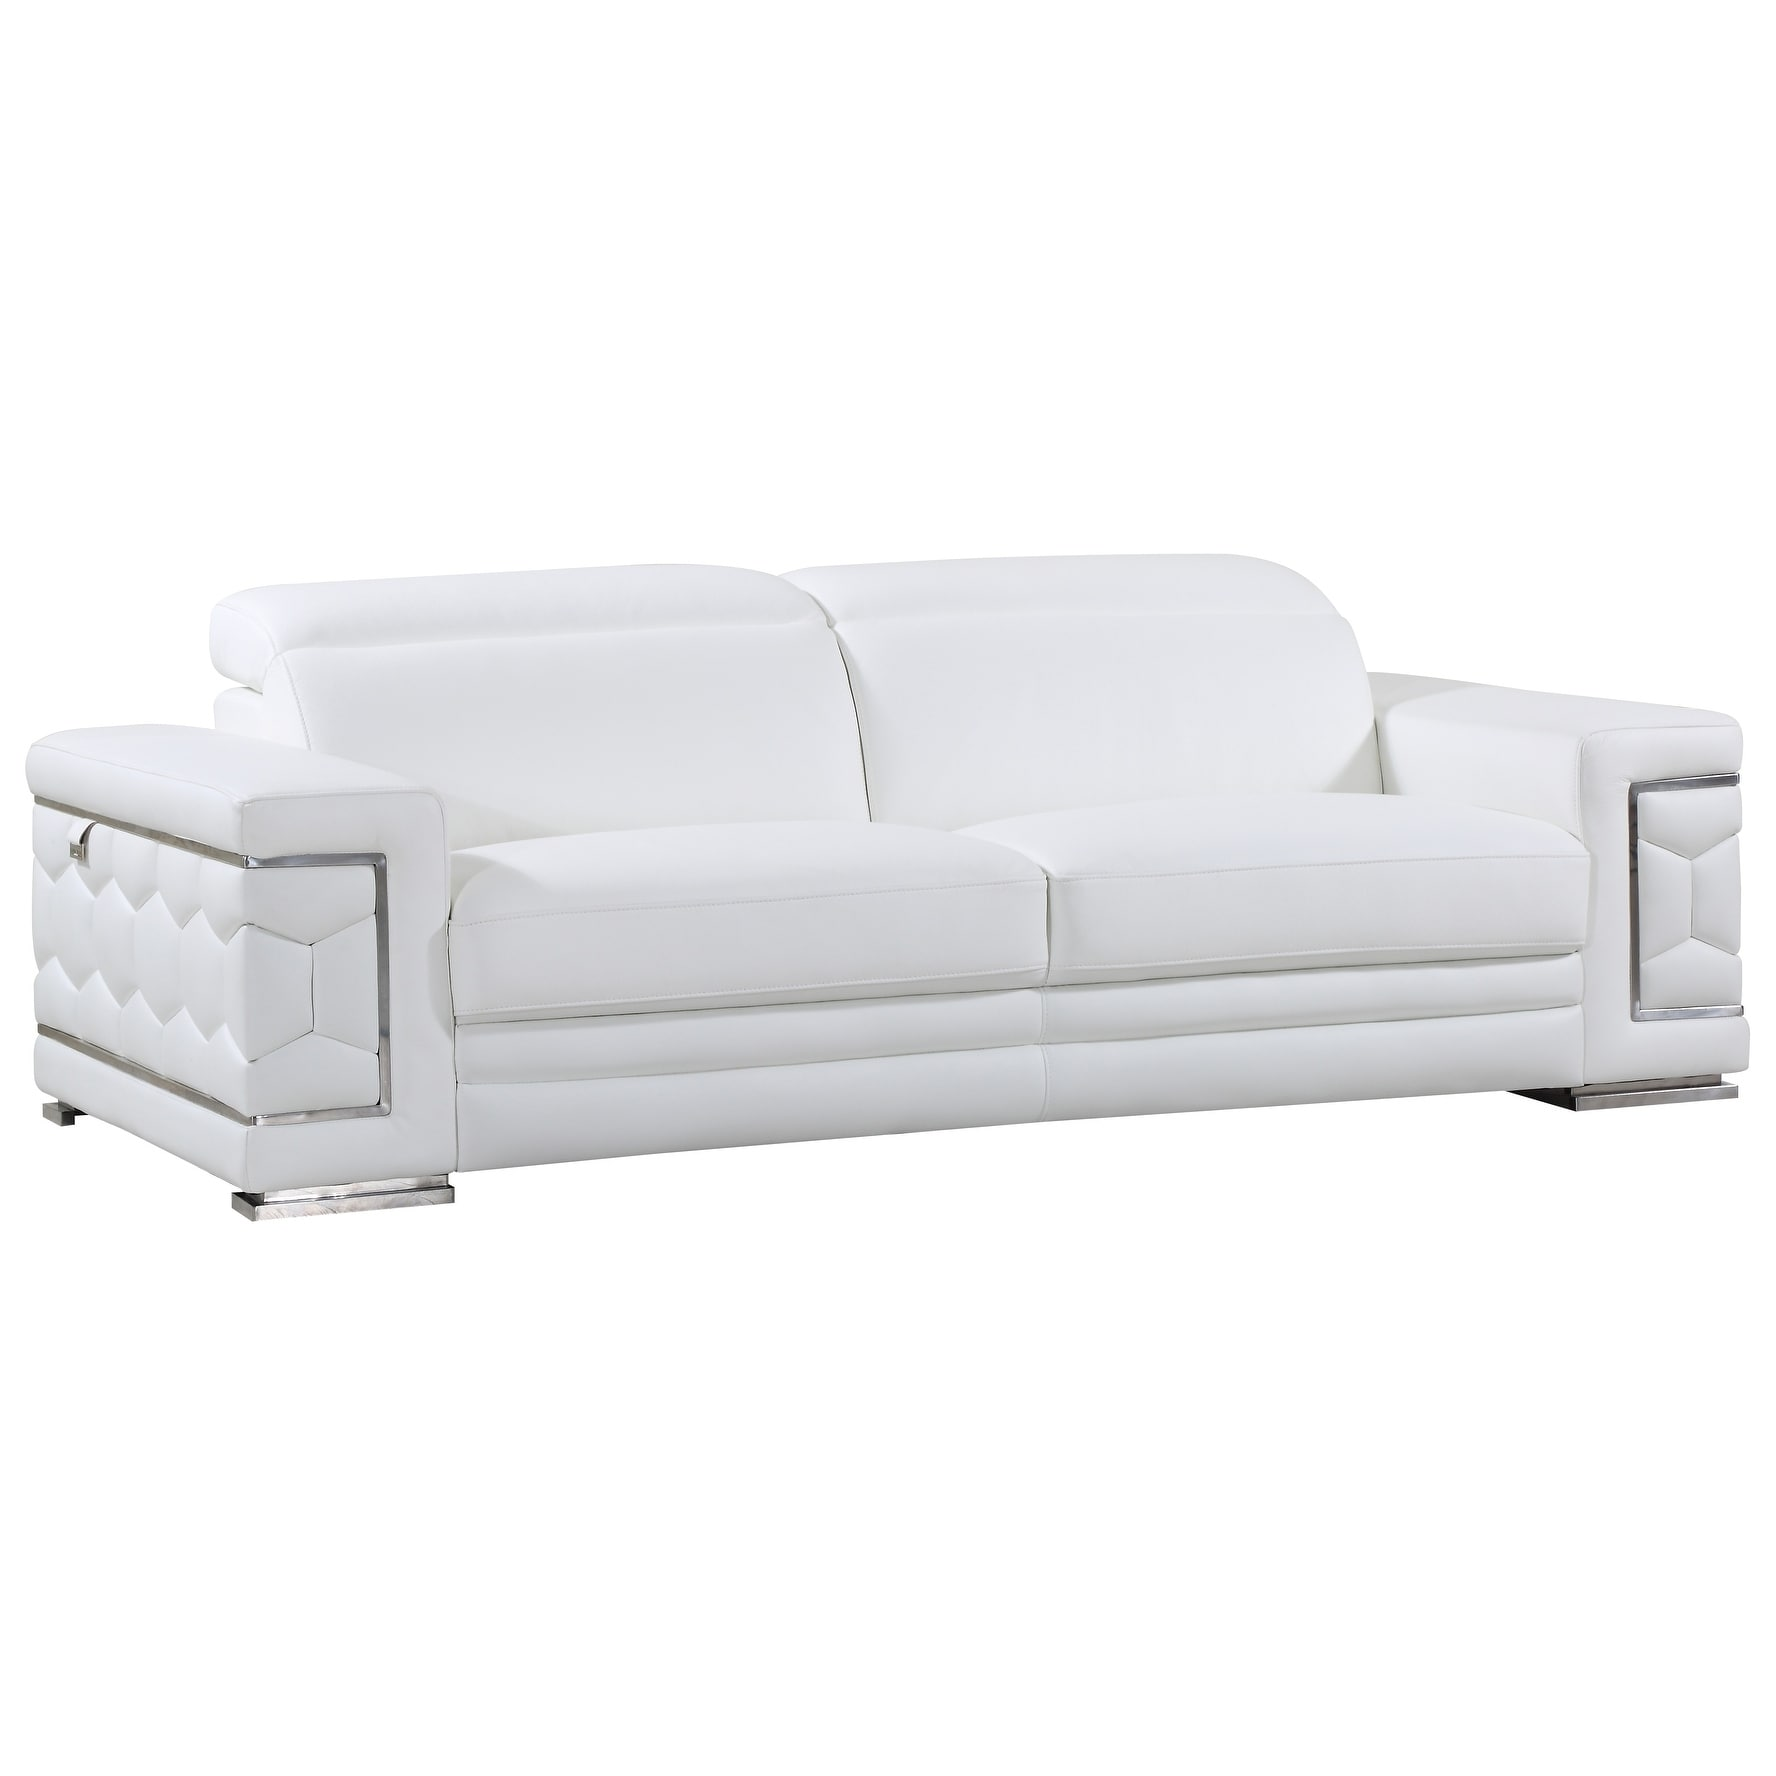 White Sofas Couches Online At Our Best Living Room Furniture Deals